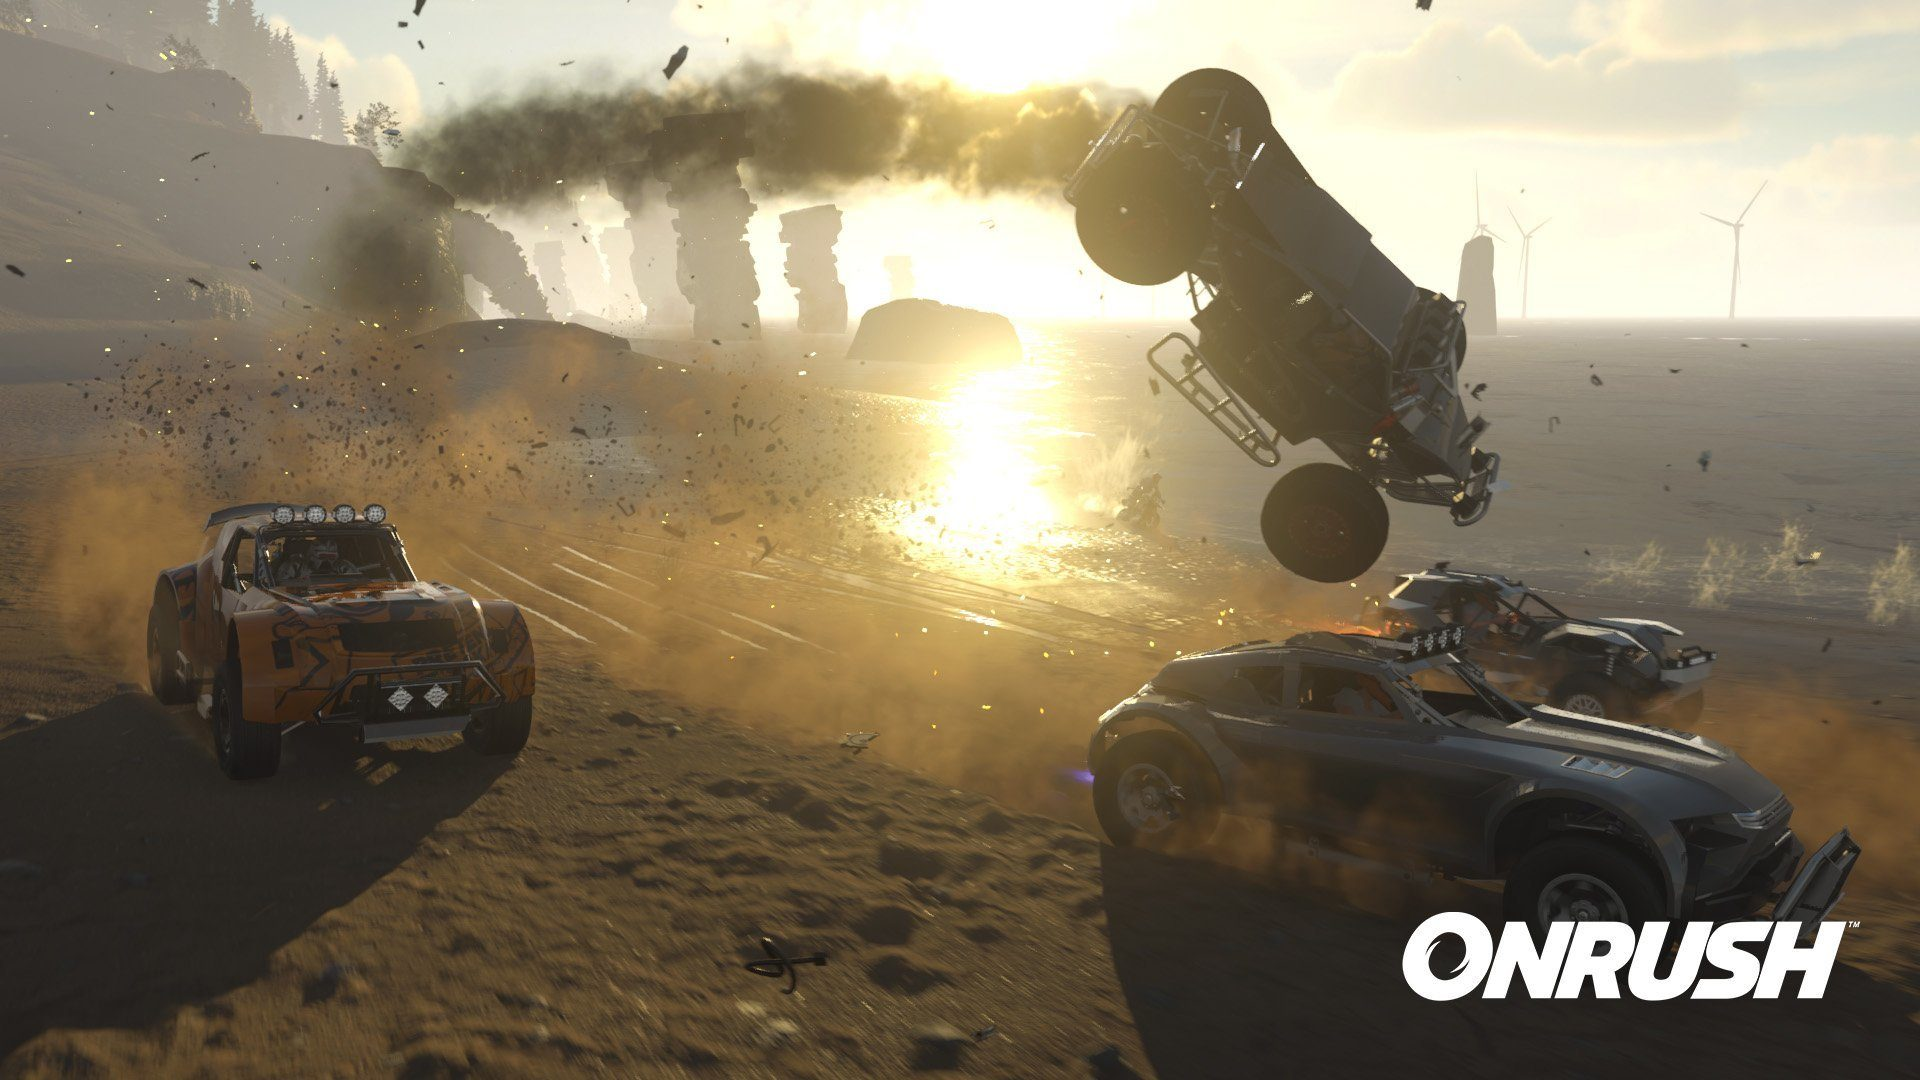 onrush gets a new trailer open beta coming in may update